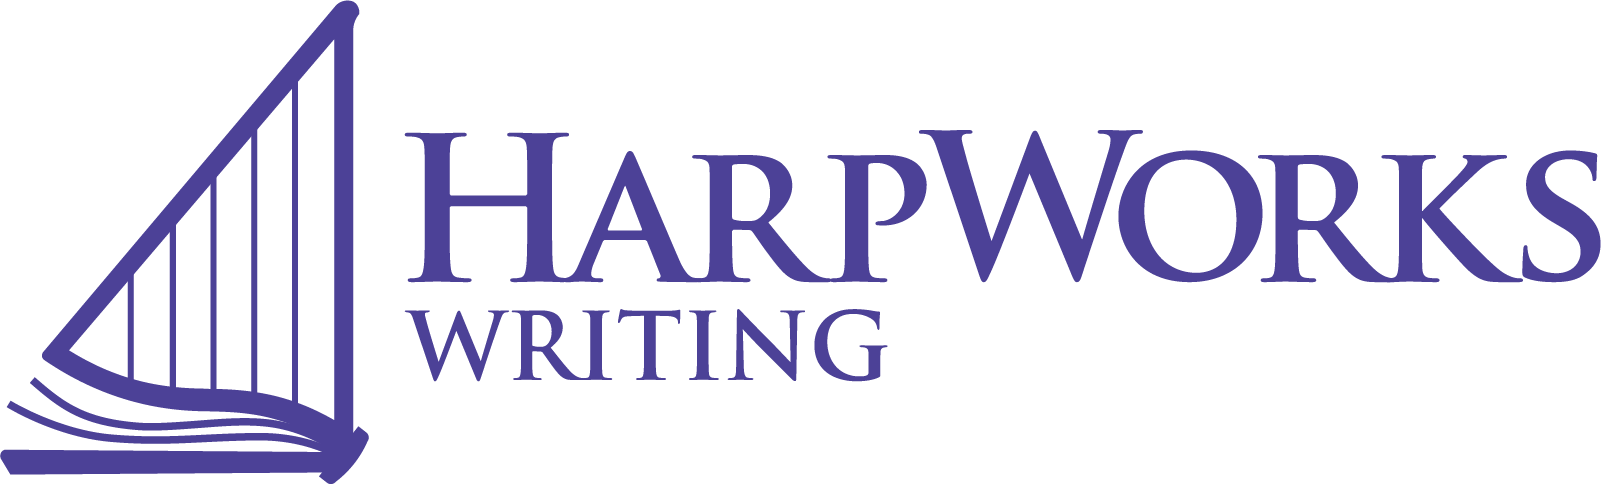 HarpWorks Writing